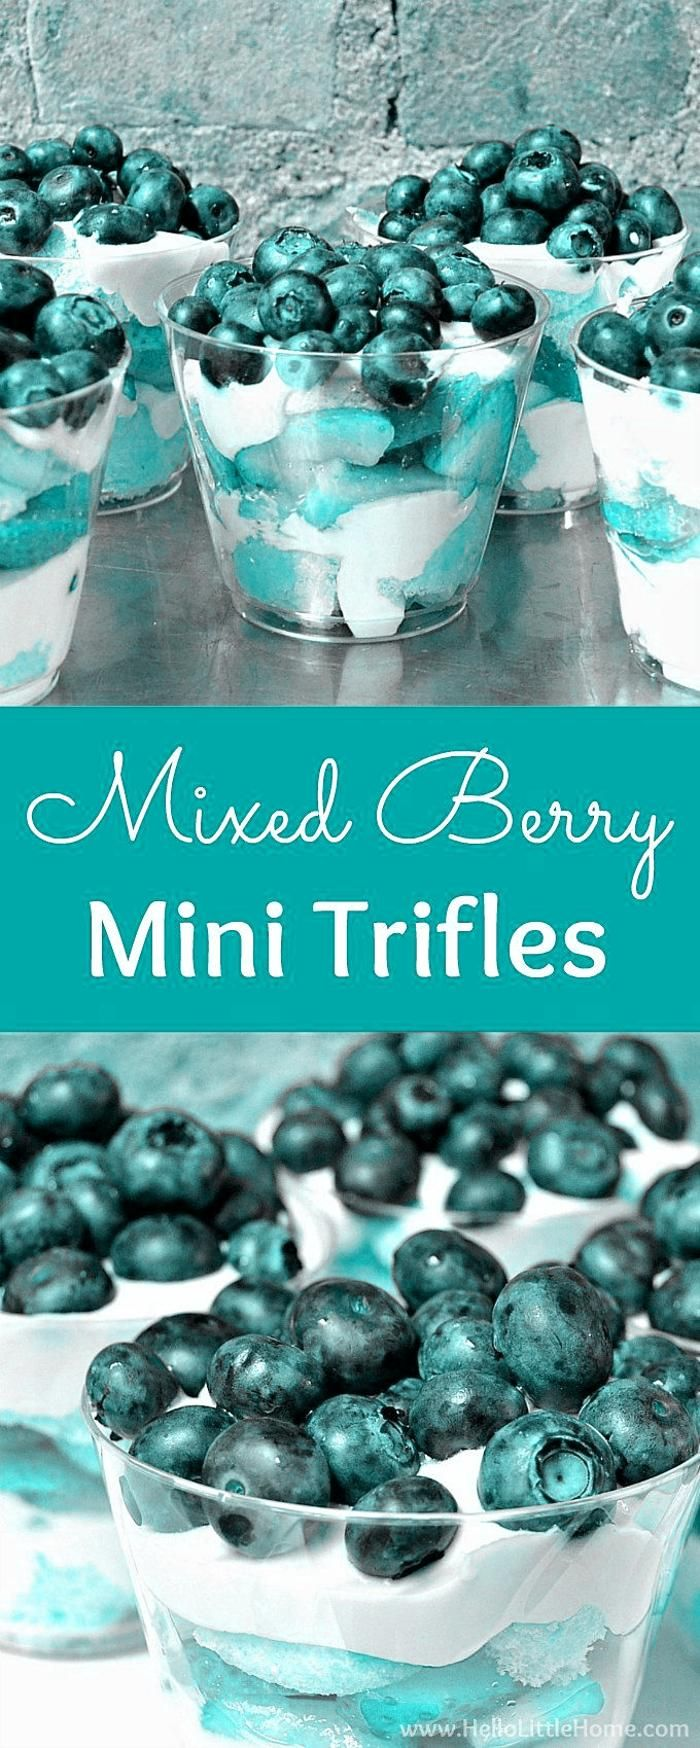 Mixed Berry Mini Trifles recipe! Learn how to make easy mini trifle desserts with layers of strawberries blueberries cream cheese filling  ladyfingers! Serve these individual trifles in glasses or jars. This no bake treat is a great red white and blue dessert for the 4th of July or Memorial Day or serve these layered berry trifles for any occasion! | Hello Little Home #trifle #triflerecipe #minidessert #minitrifle #individualtrifle #berrytrifle #redwhiteandblue #strawberries ... right manner and